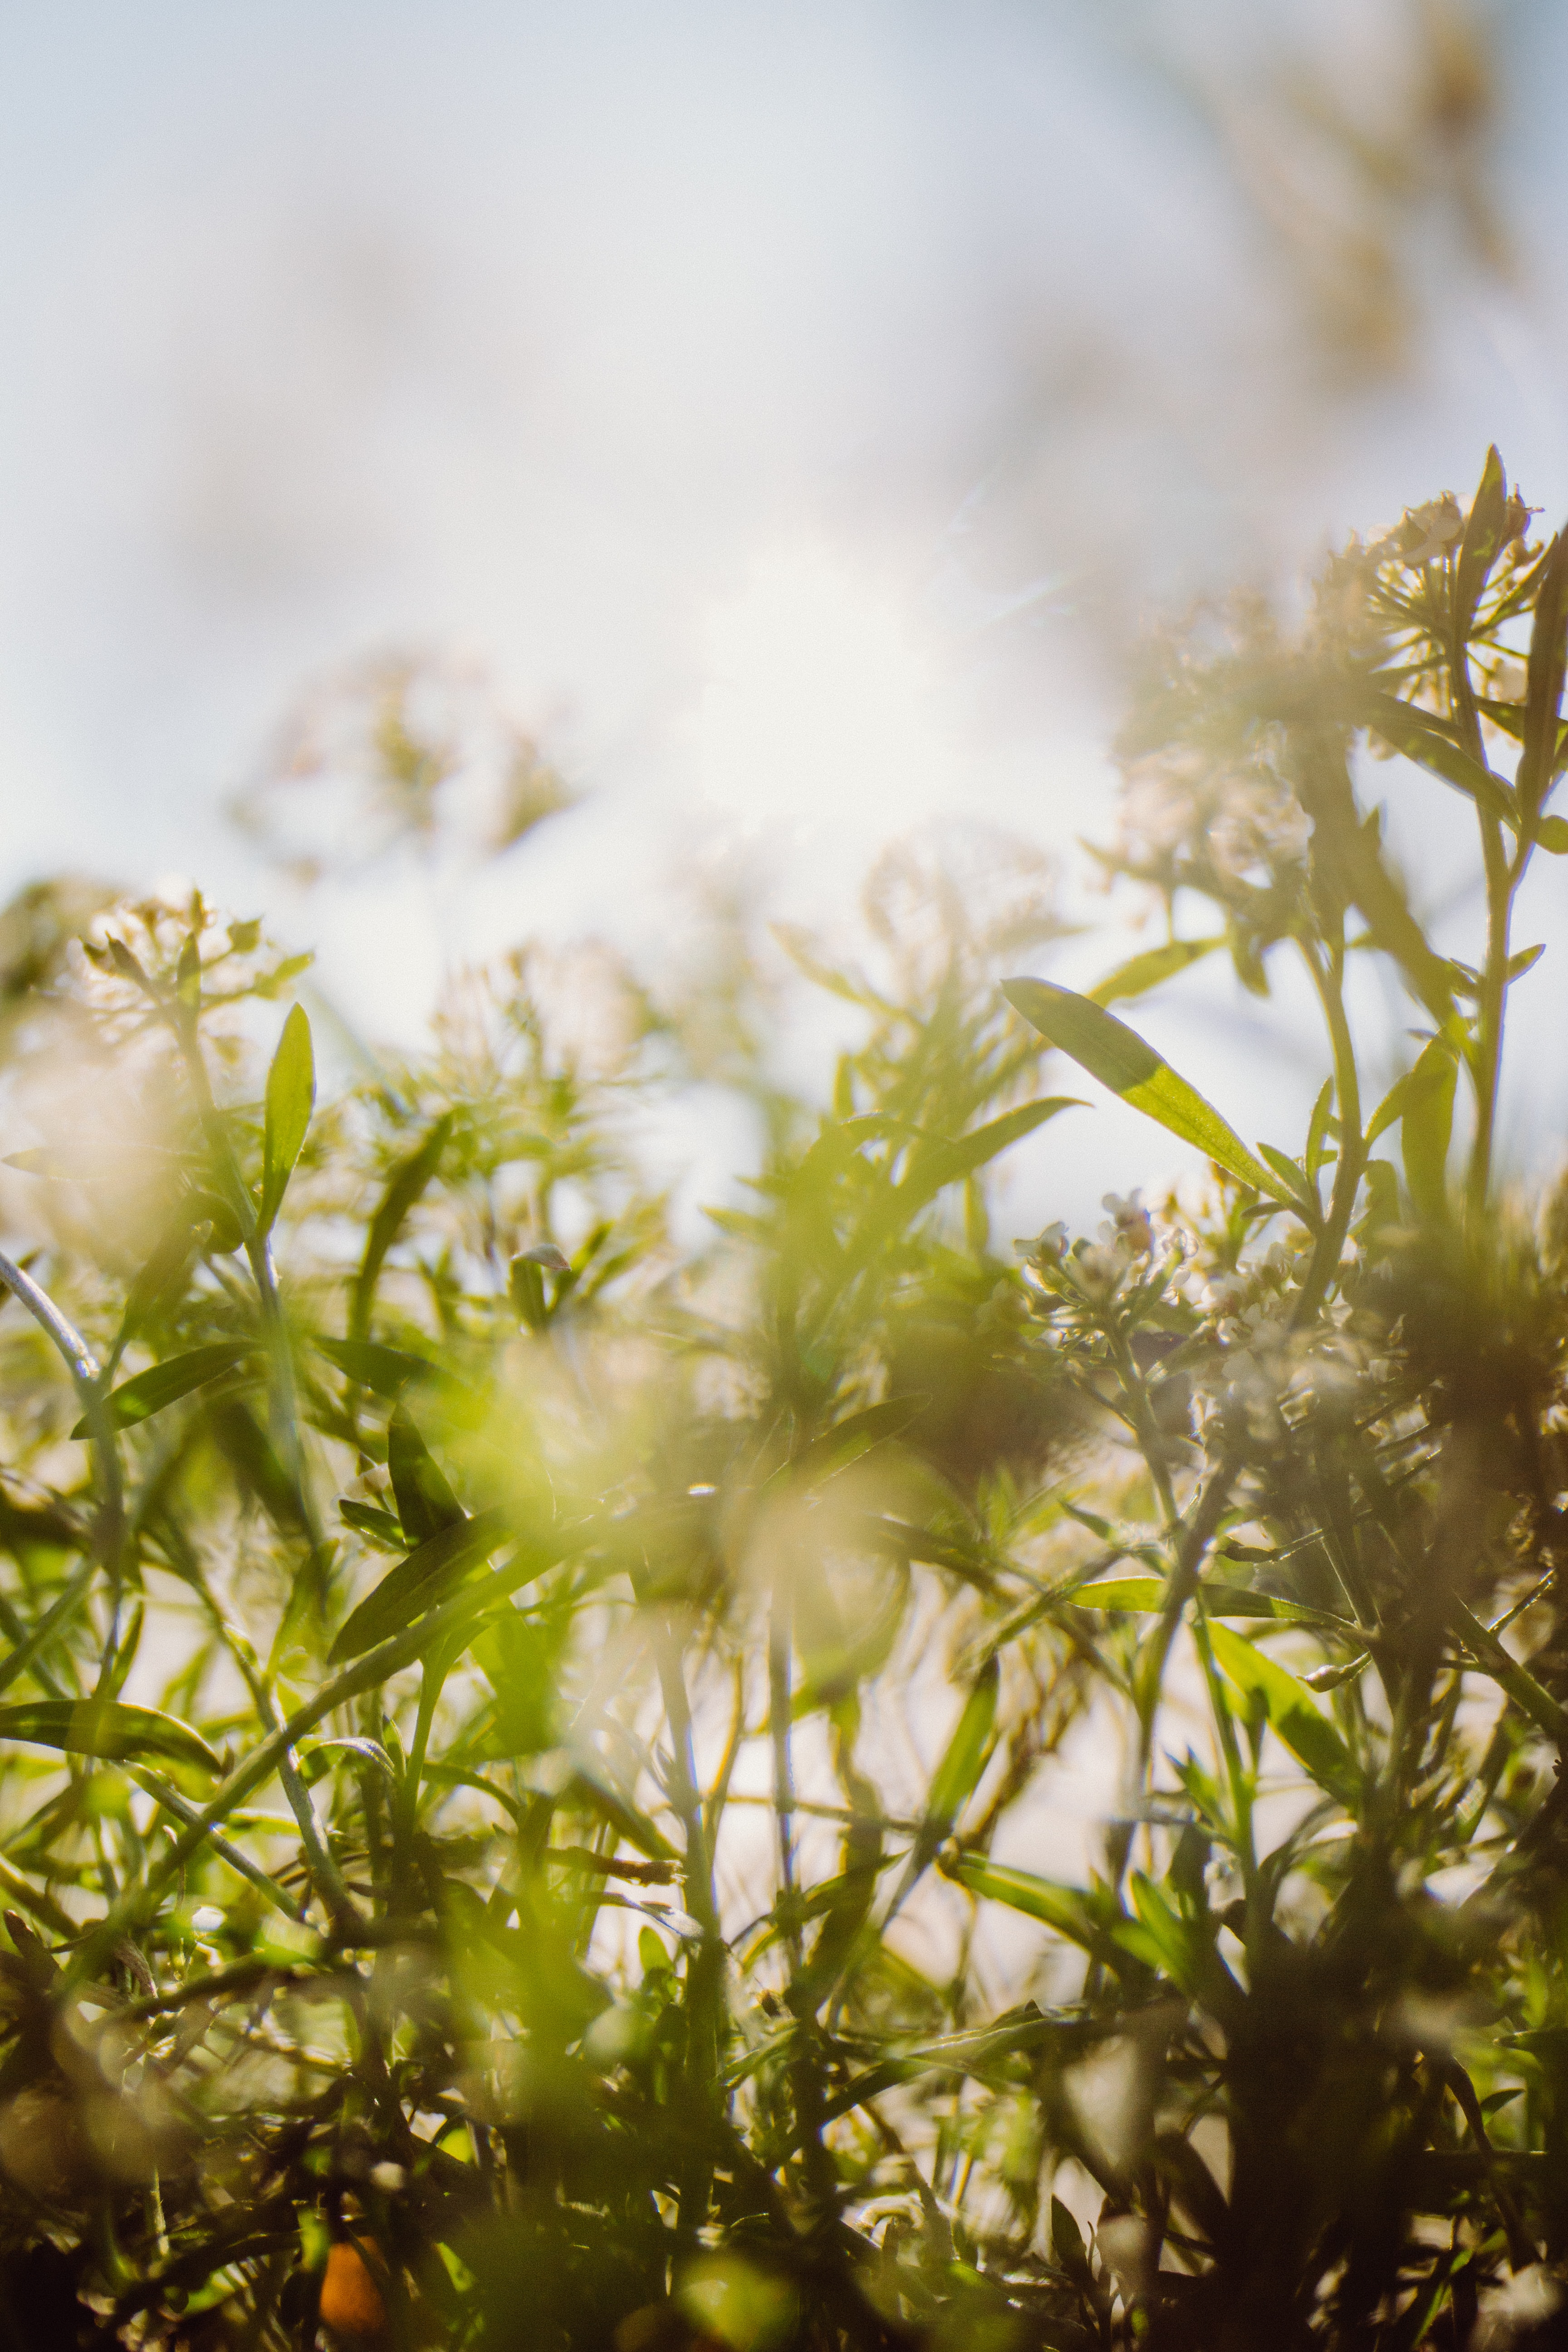 worm's eye view photo of white petaled flowers